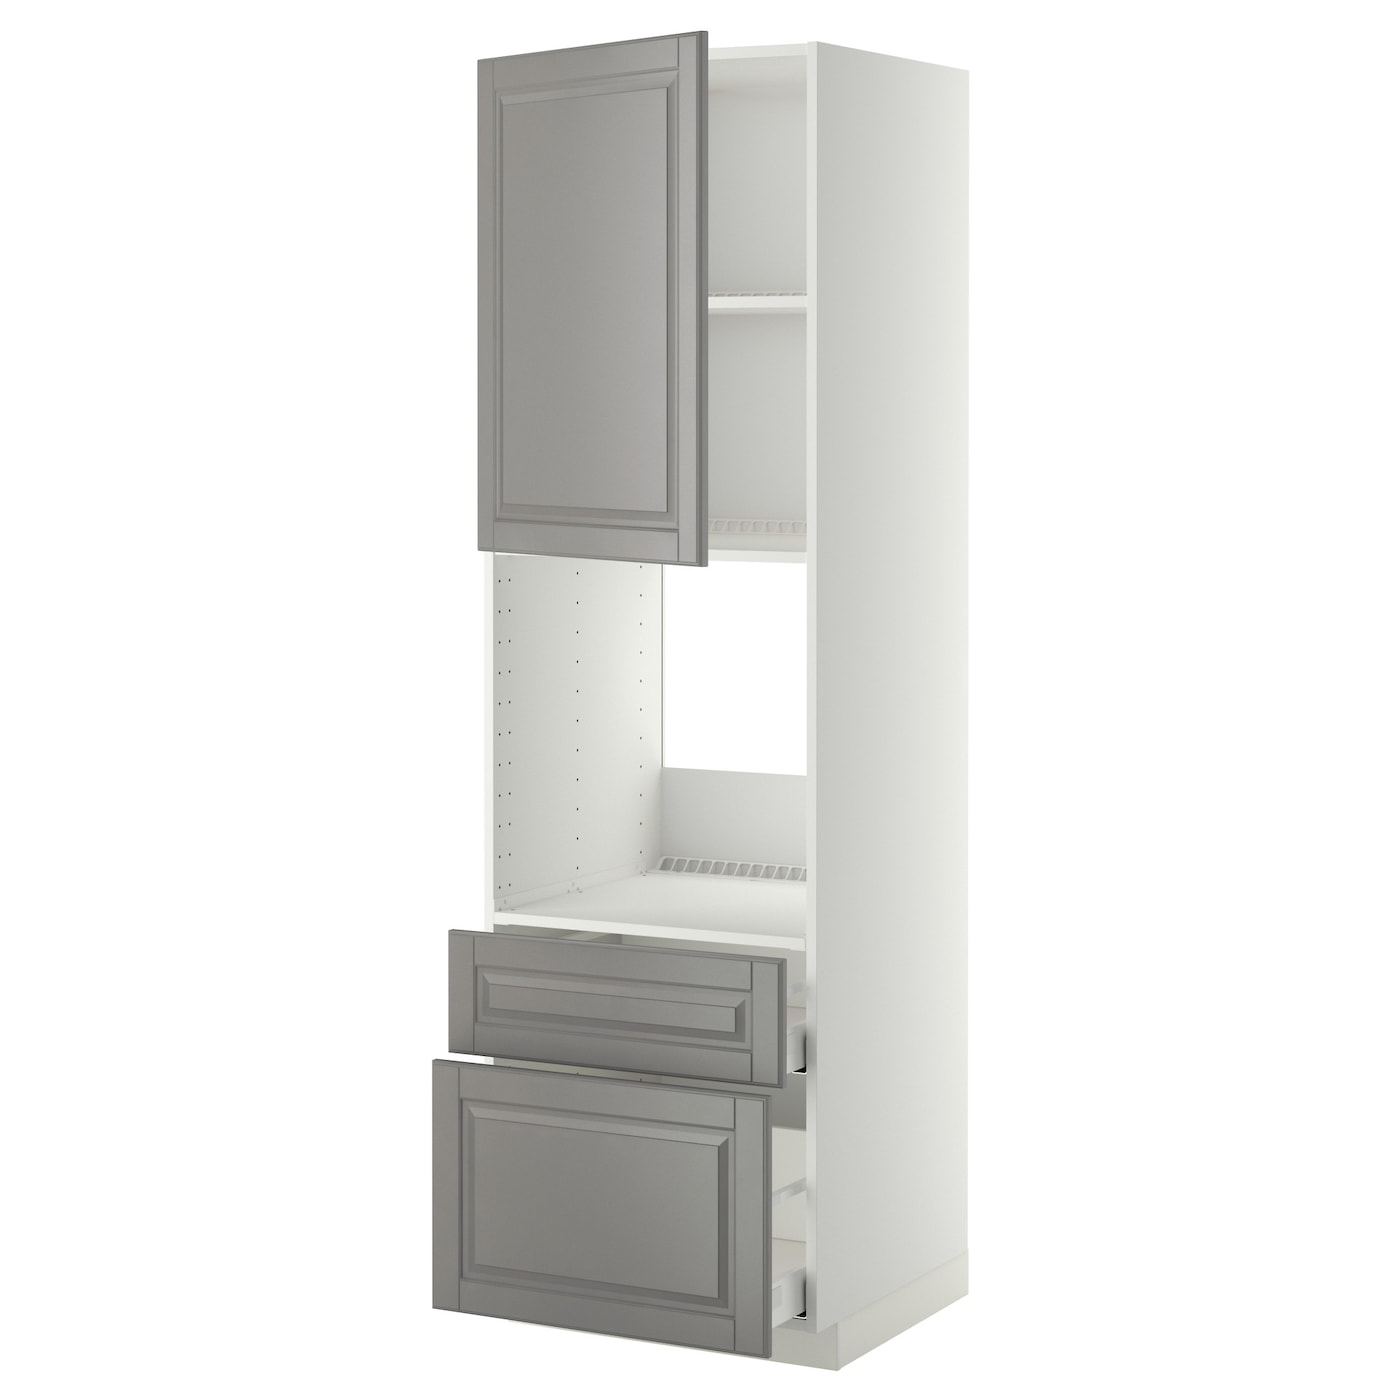 metod maximera armoire pour four porte 2 tiroirs blanc bodbyn gris 60x60x200 cm ikea. Black Bedroom Furniture Sets. Home Design Ideas